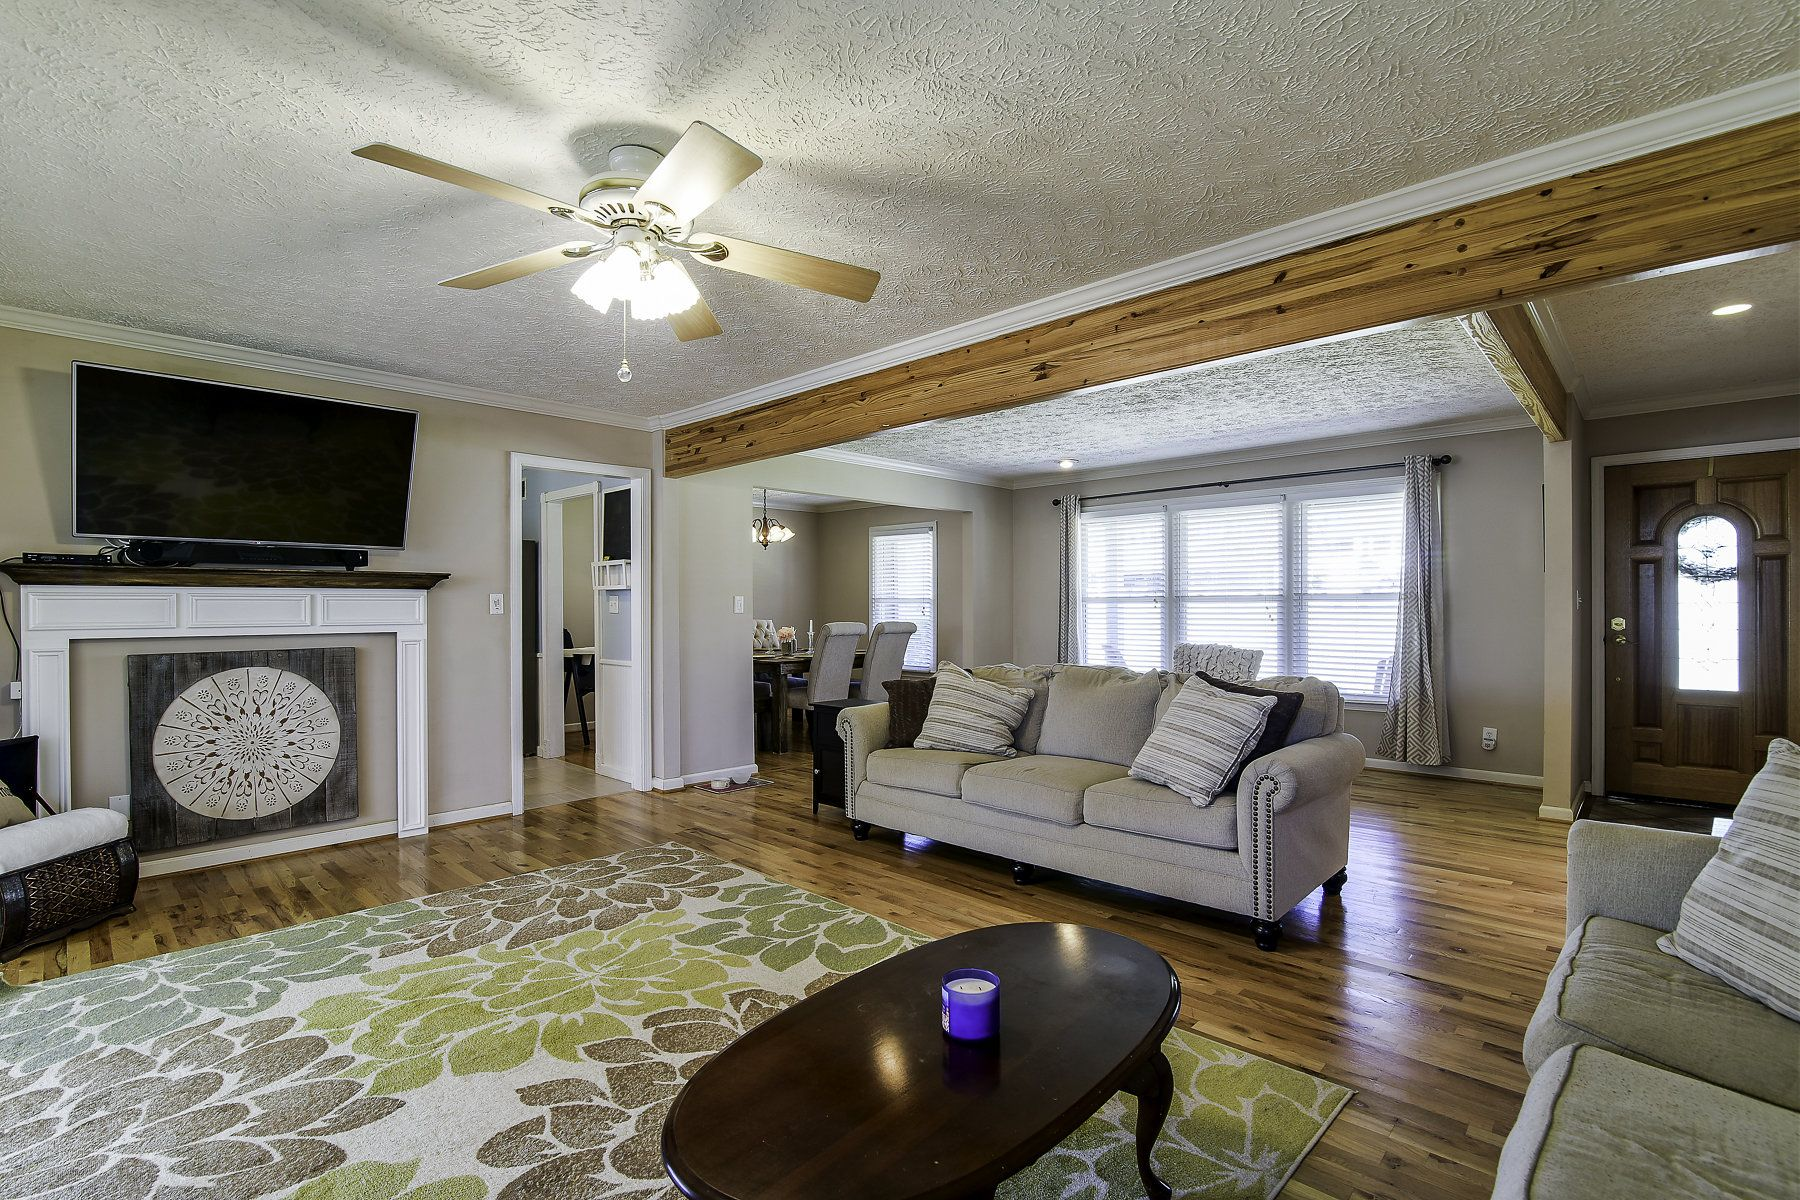 Pin By Re Max Pure On For Sale 336 Highview Dr Smyrna Ga Rocking Chair Front Porch Brick Ranch Open Floor Plan